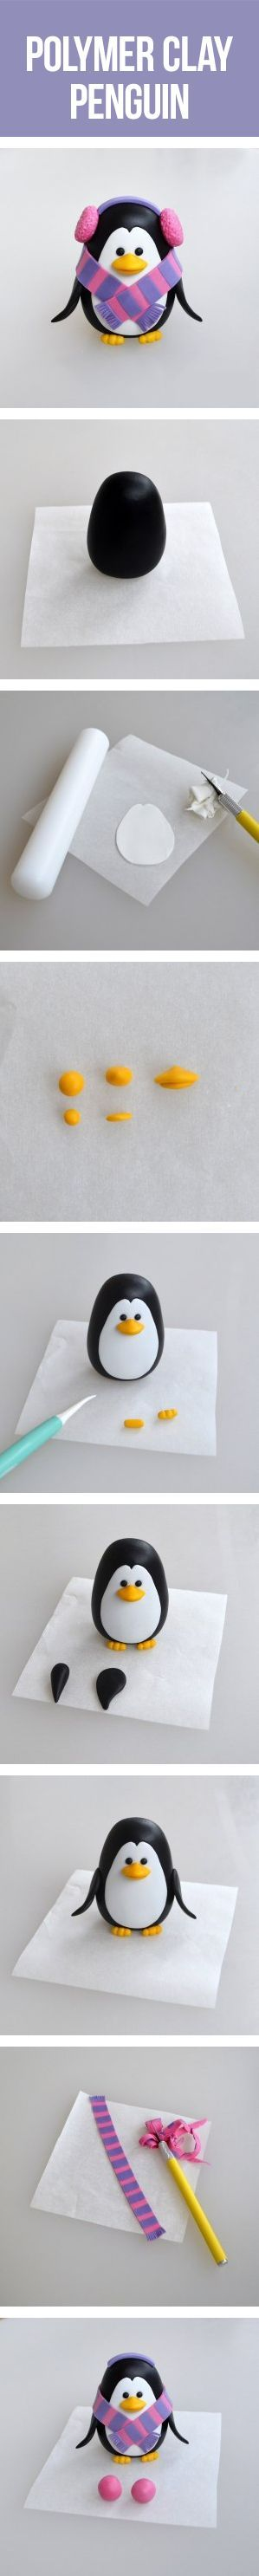 Polymer clay Penguin